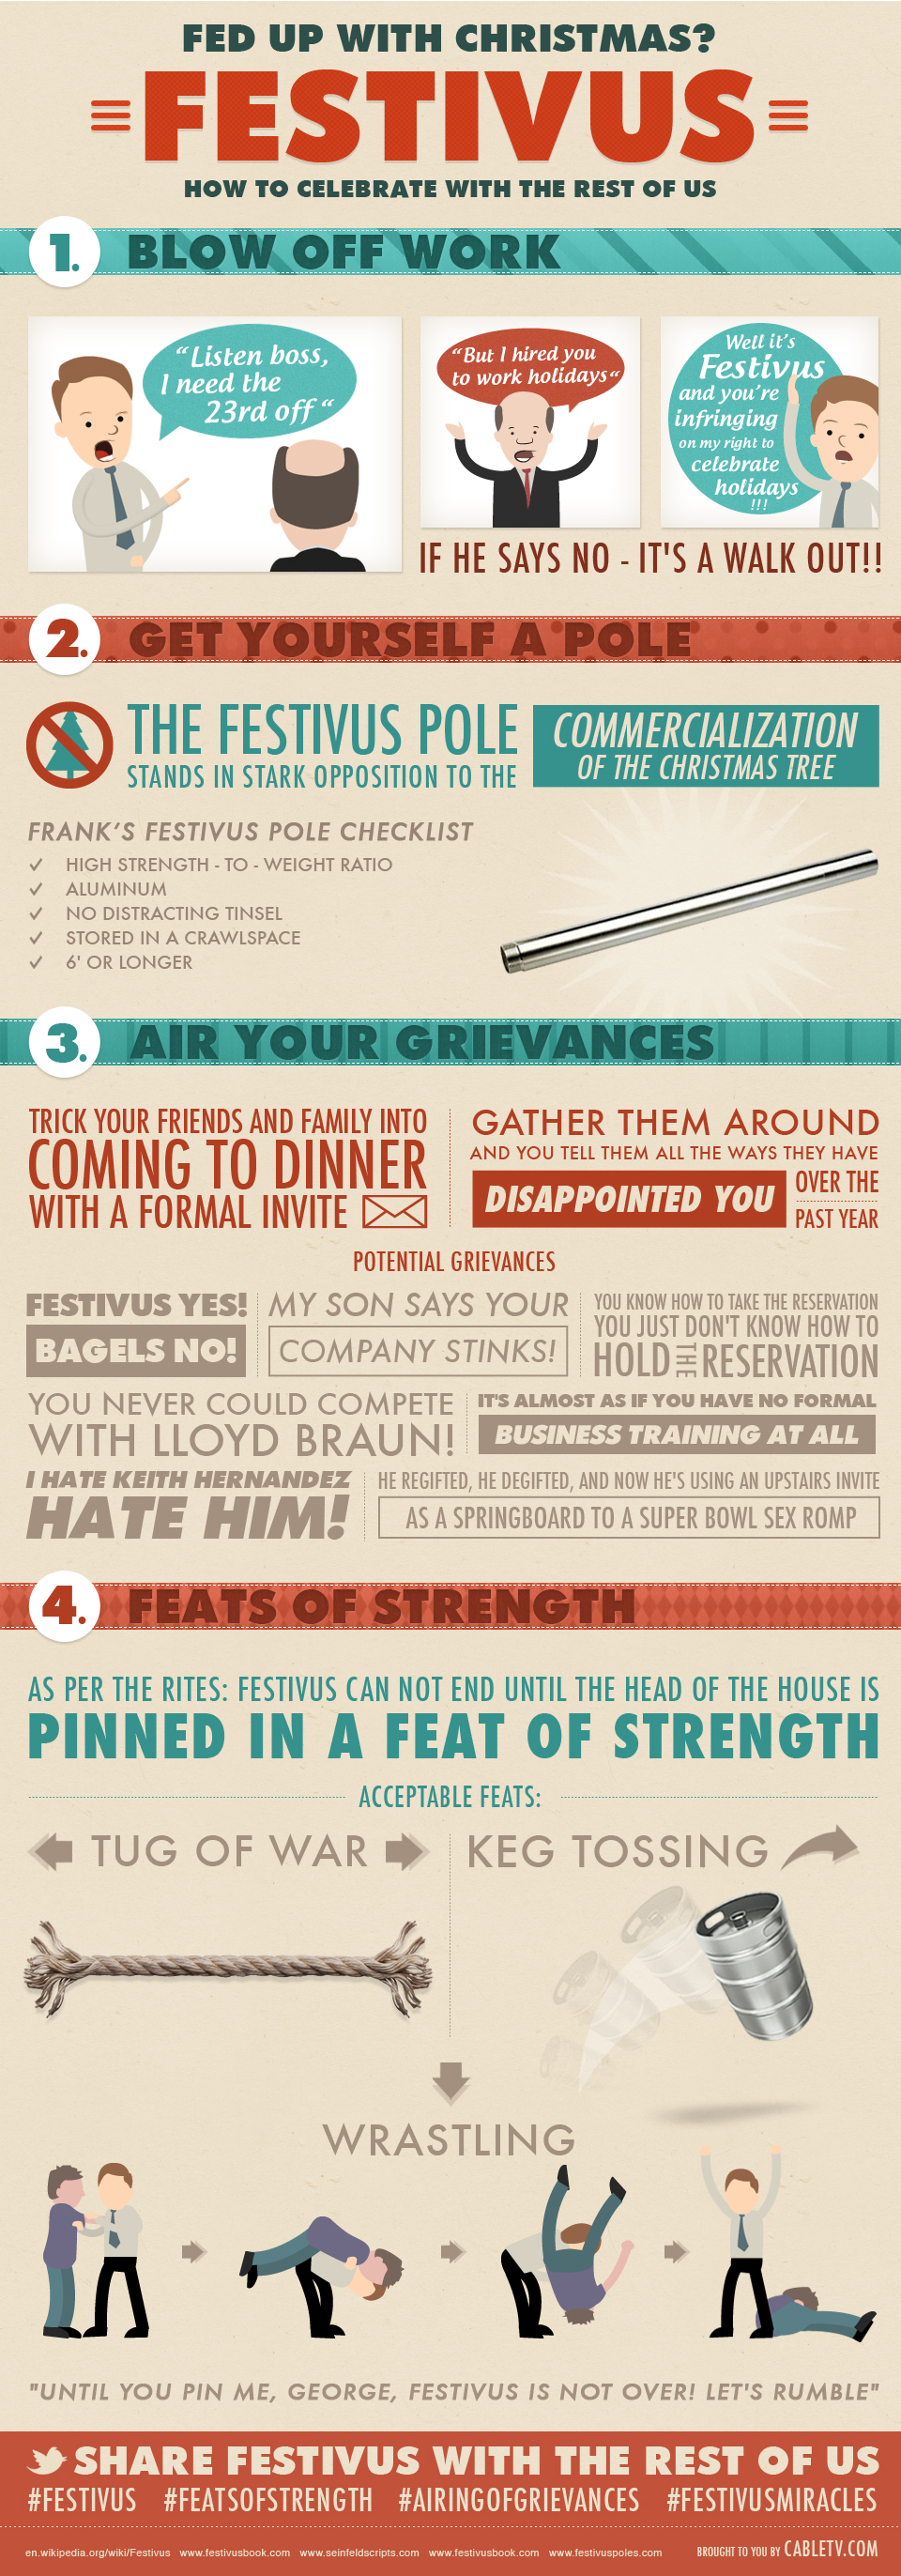 Alternative Holidays: Festivus For the Rest of Us